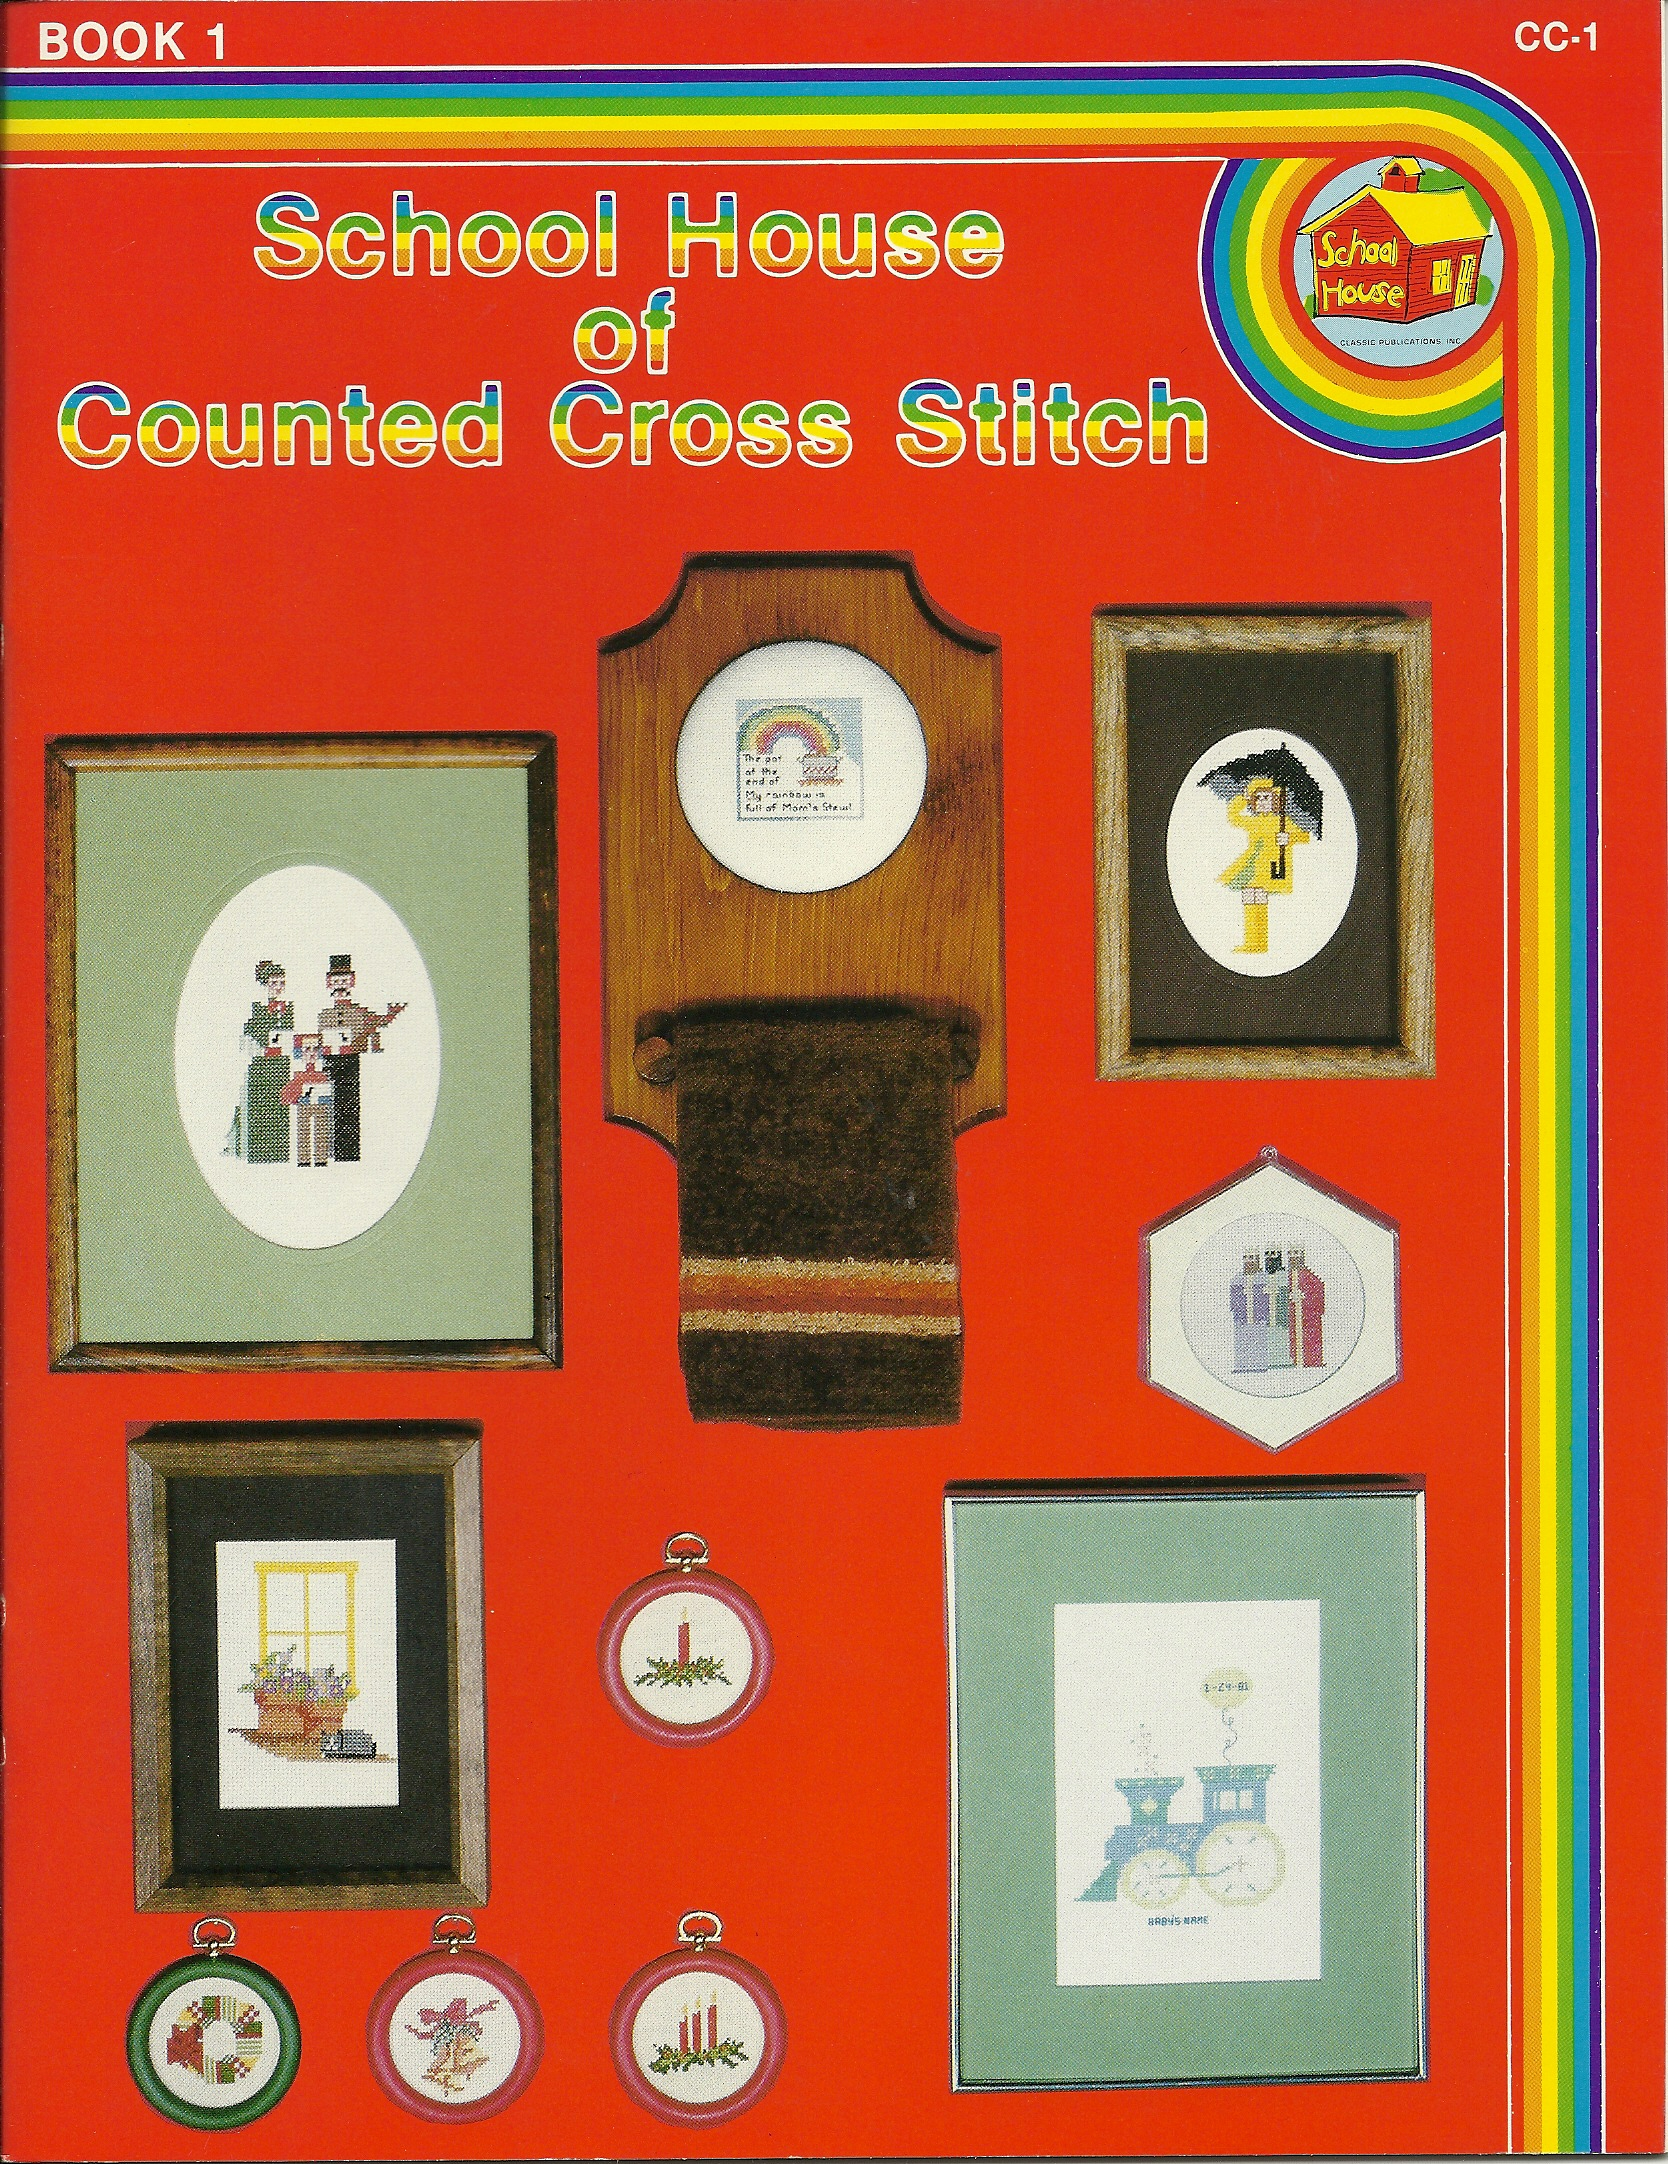 School House of Counted Cross Stitch  Book 1